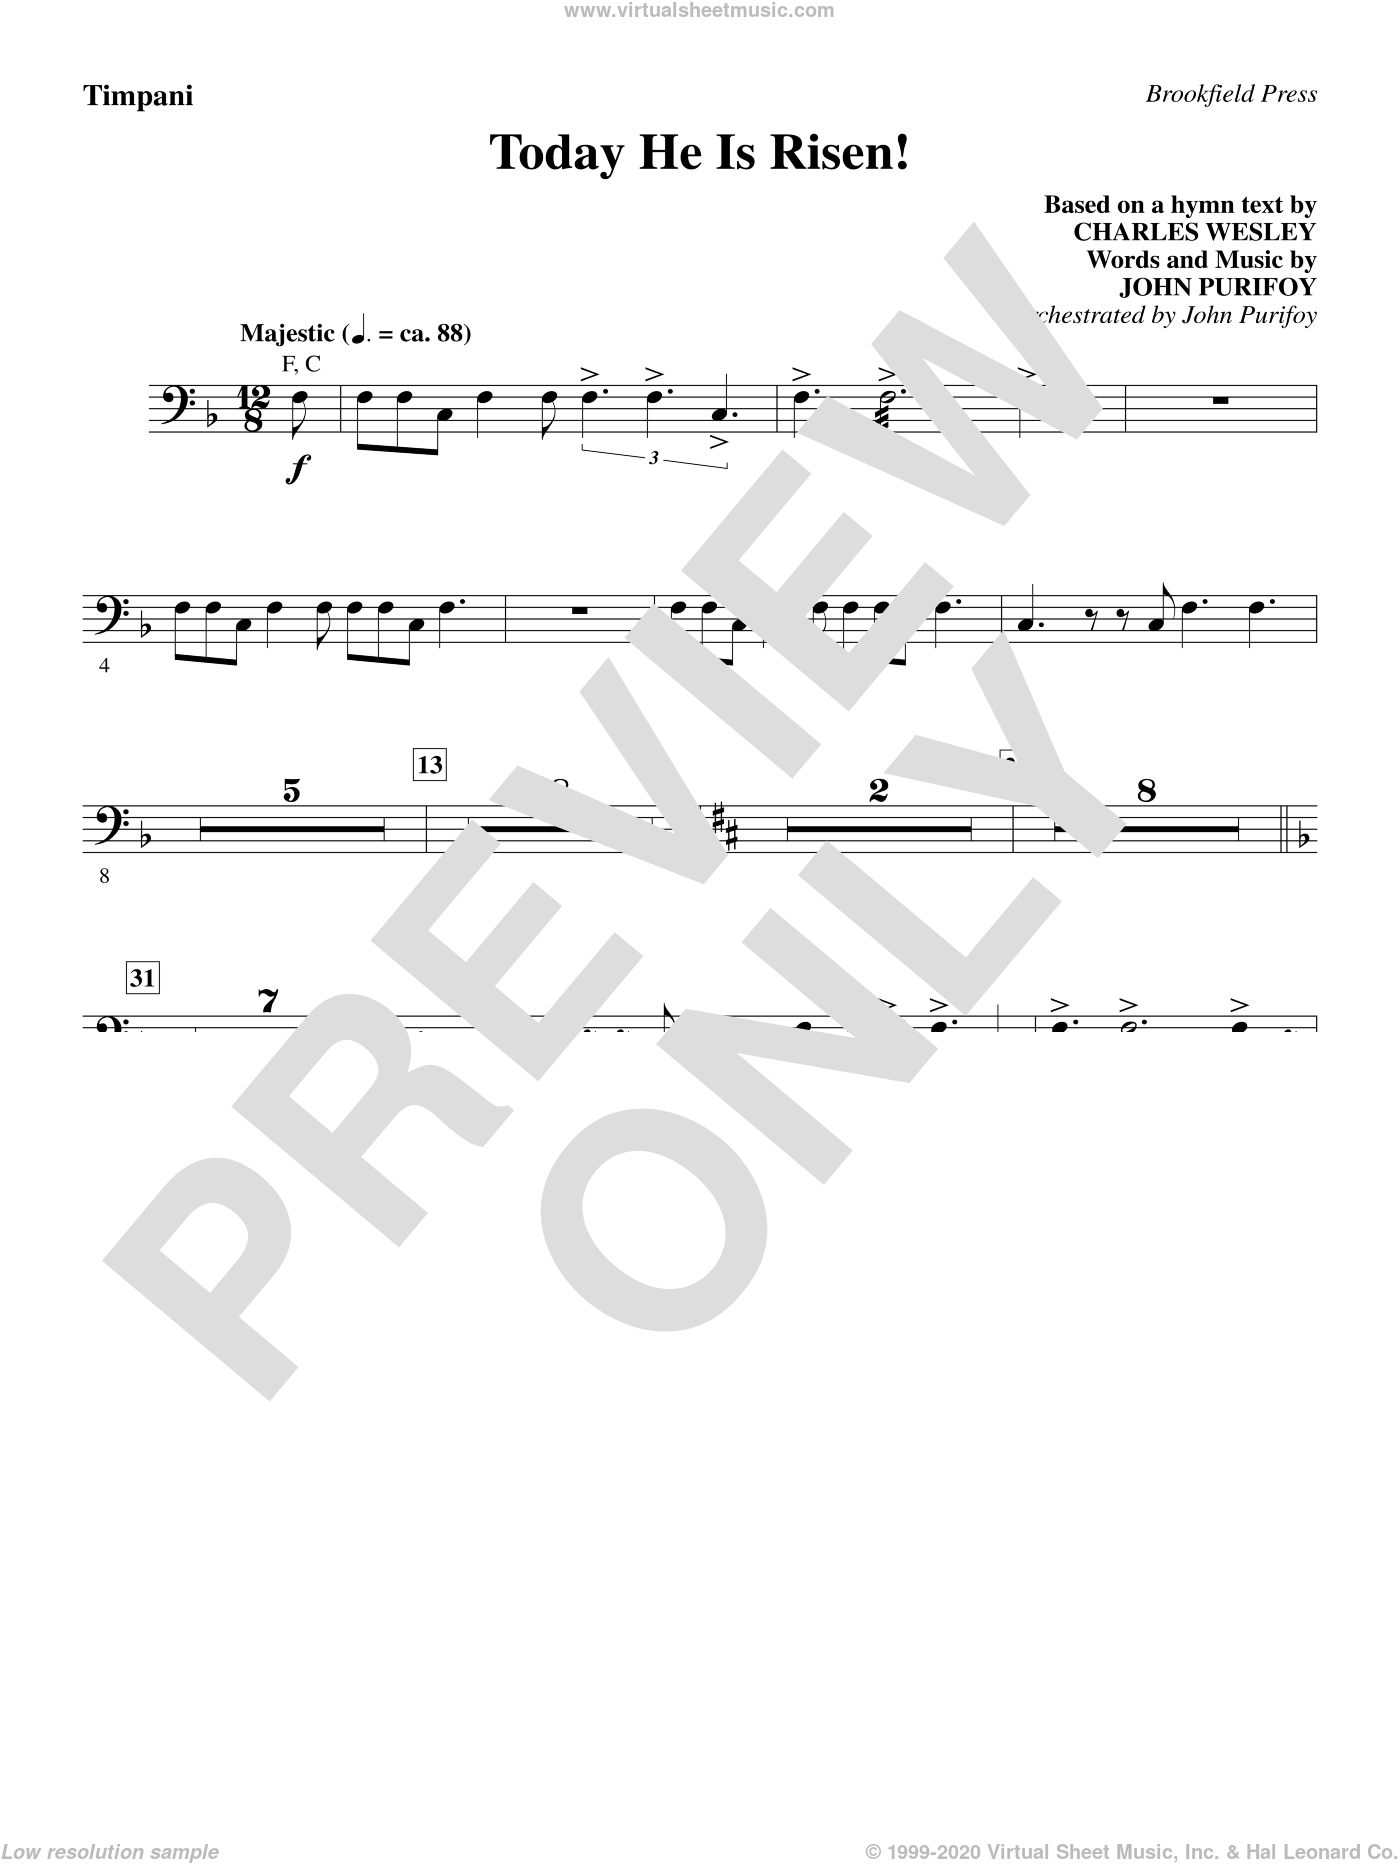 Today He Is Risen! sheet music for orchestra/band (timpani) by John Purifoy